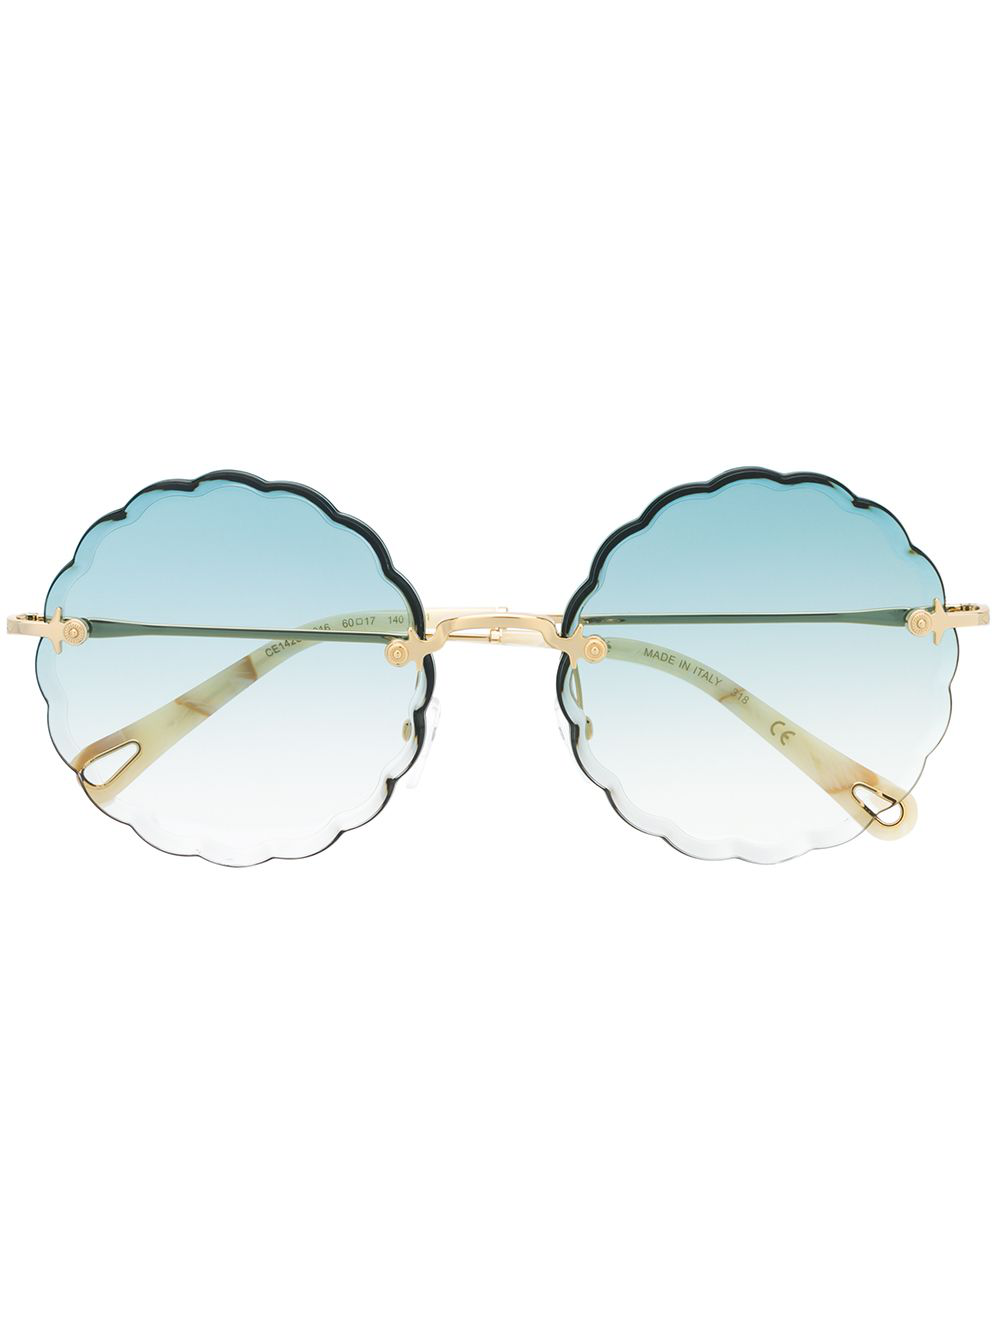 Chloé Rosie Scalloped Round-frame Sunglasses In 蓝色